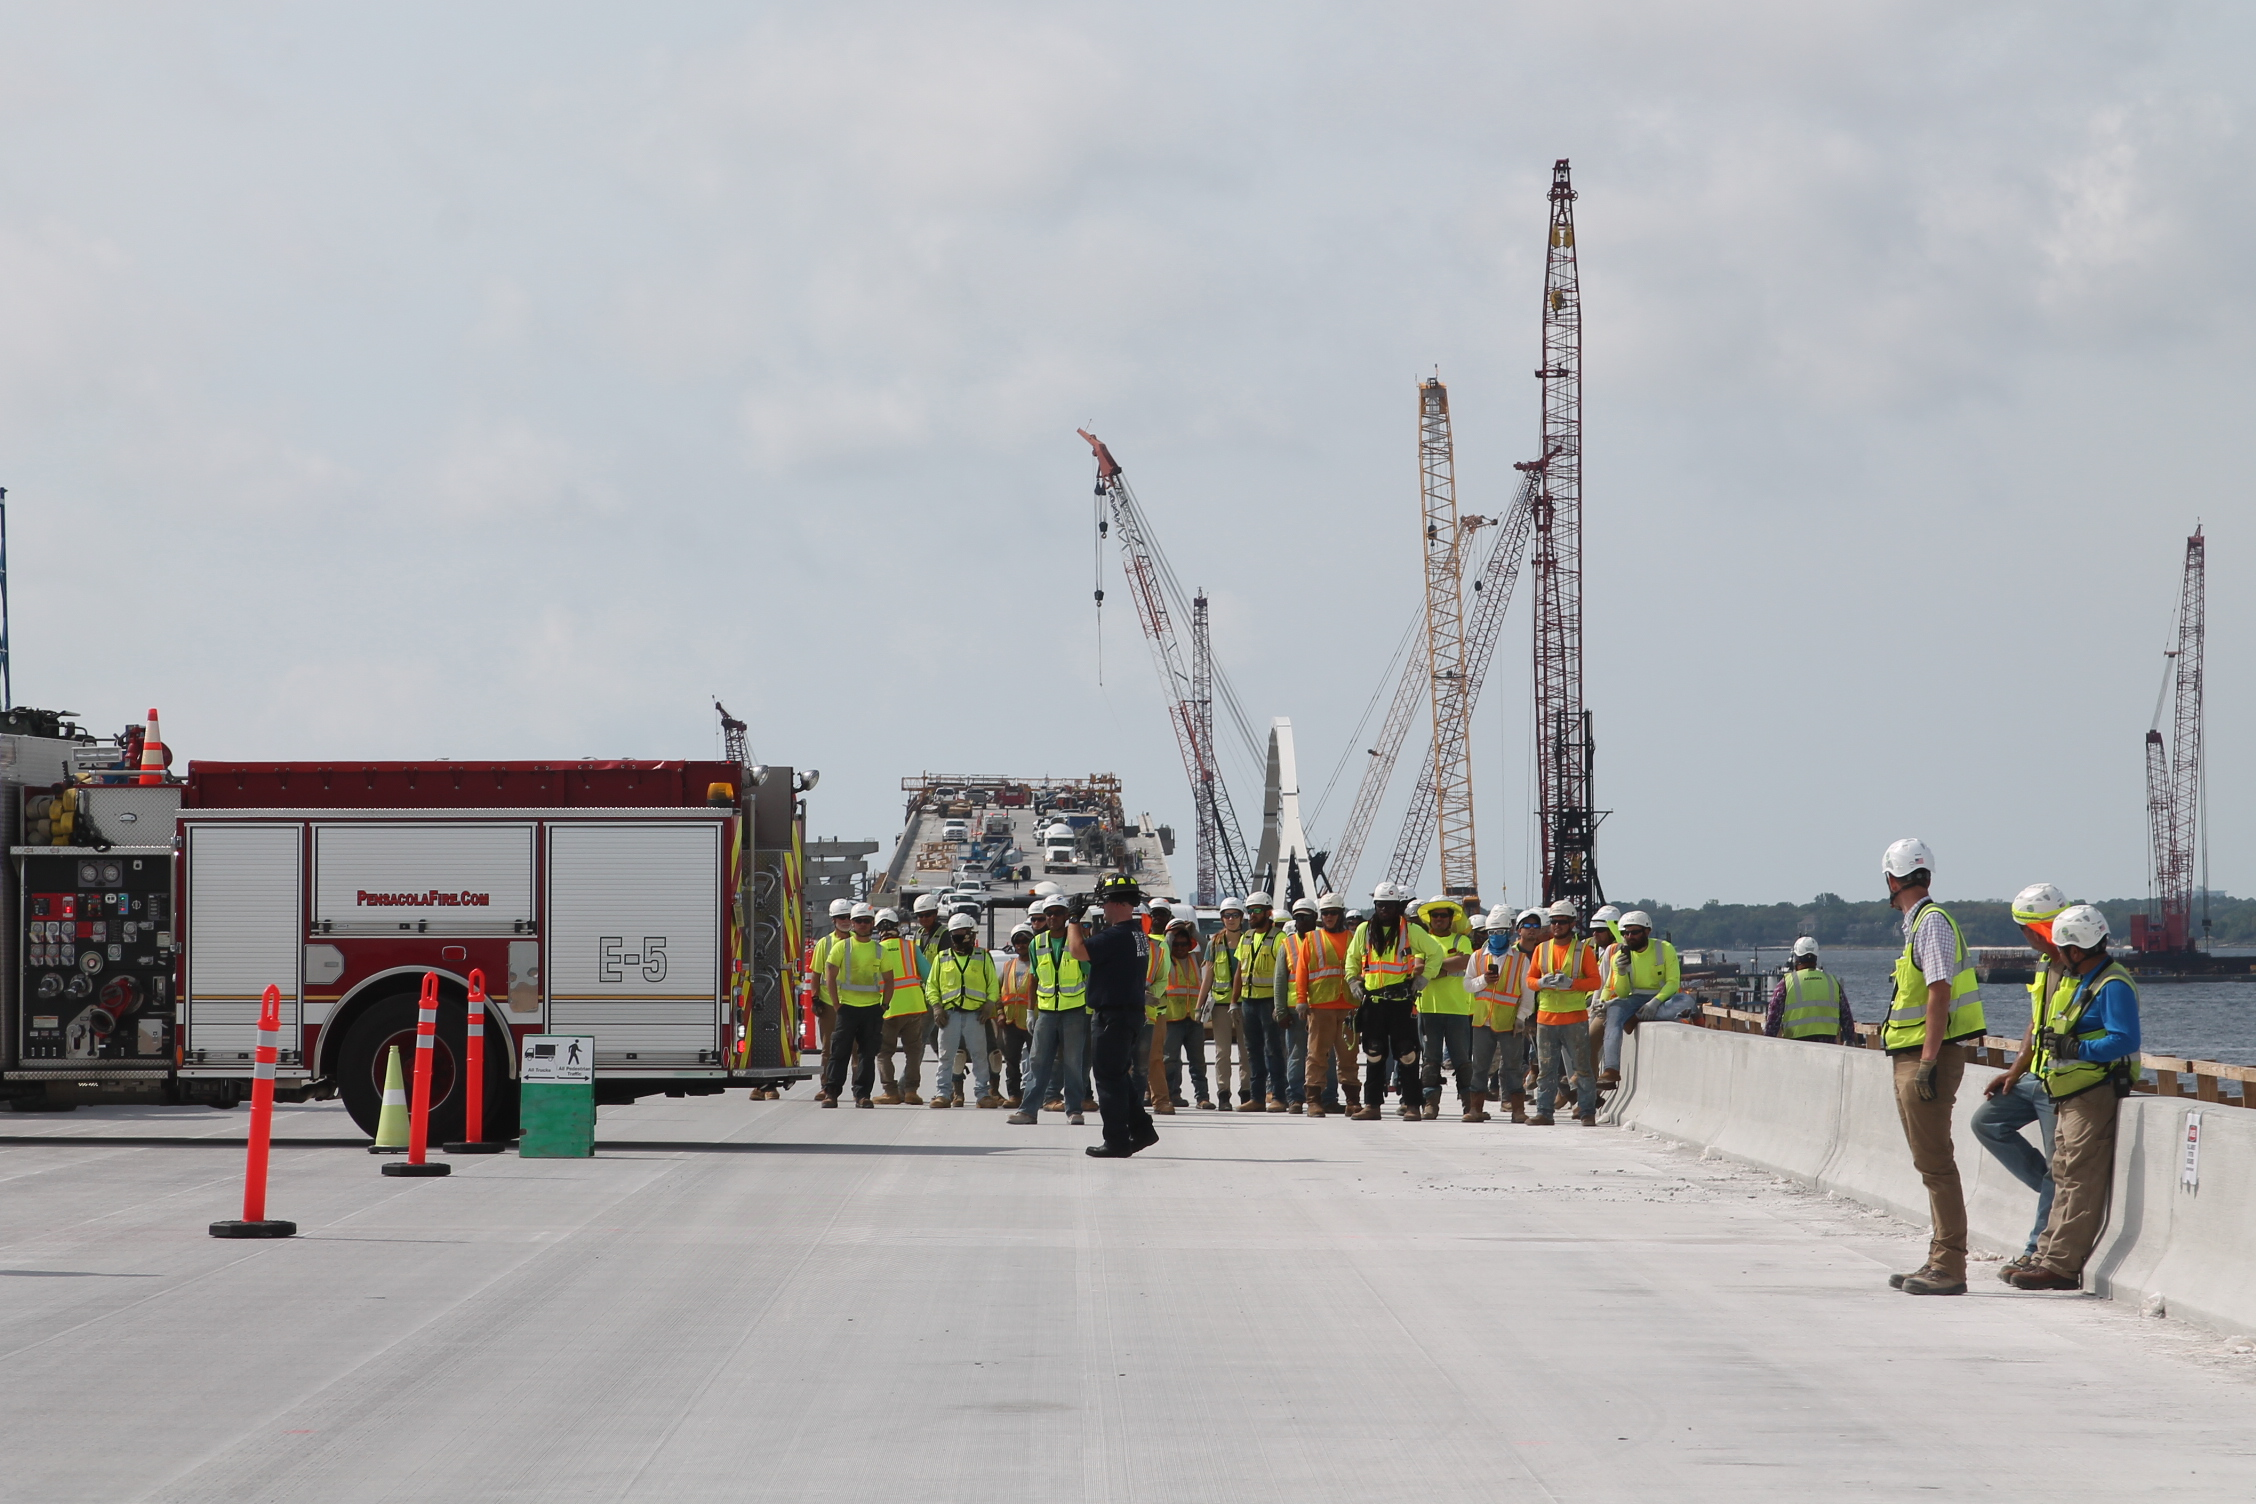 Pensacola Bay Bridge design-build contractor observed the organization's 15th Annual Health and Safety Week